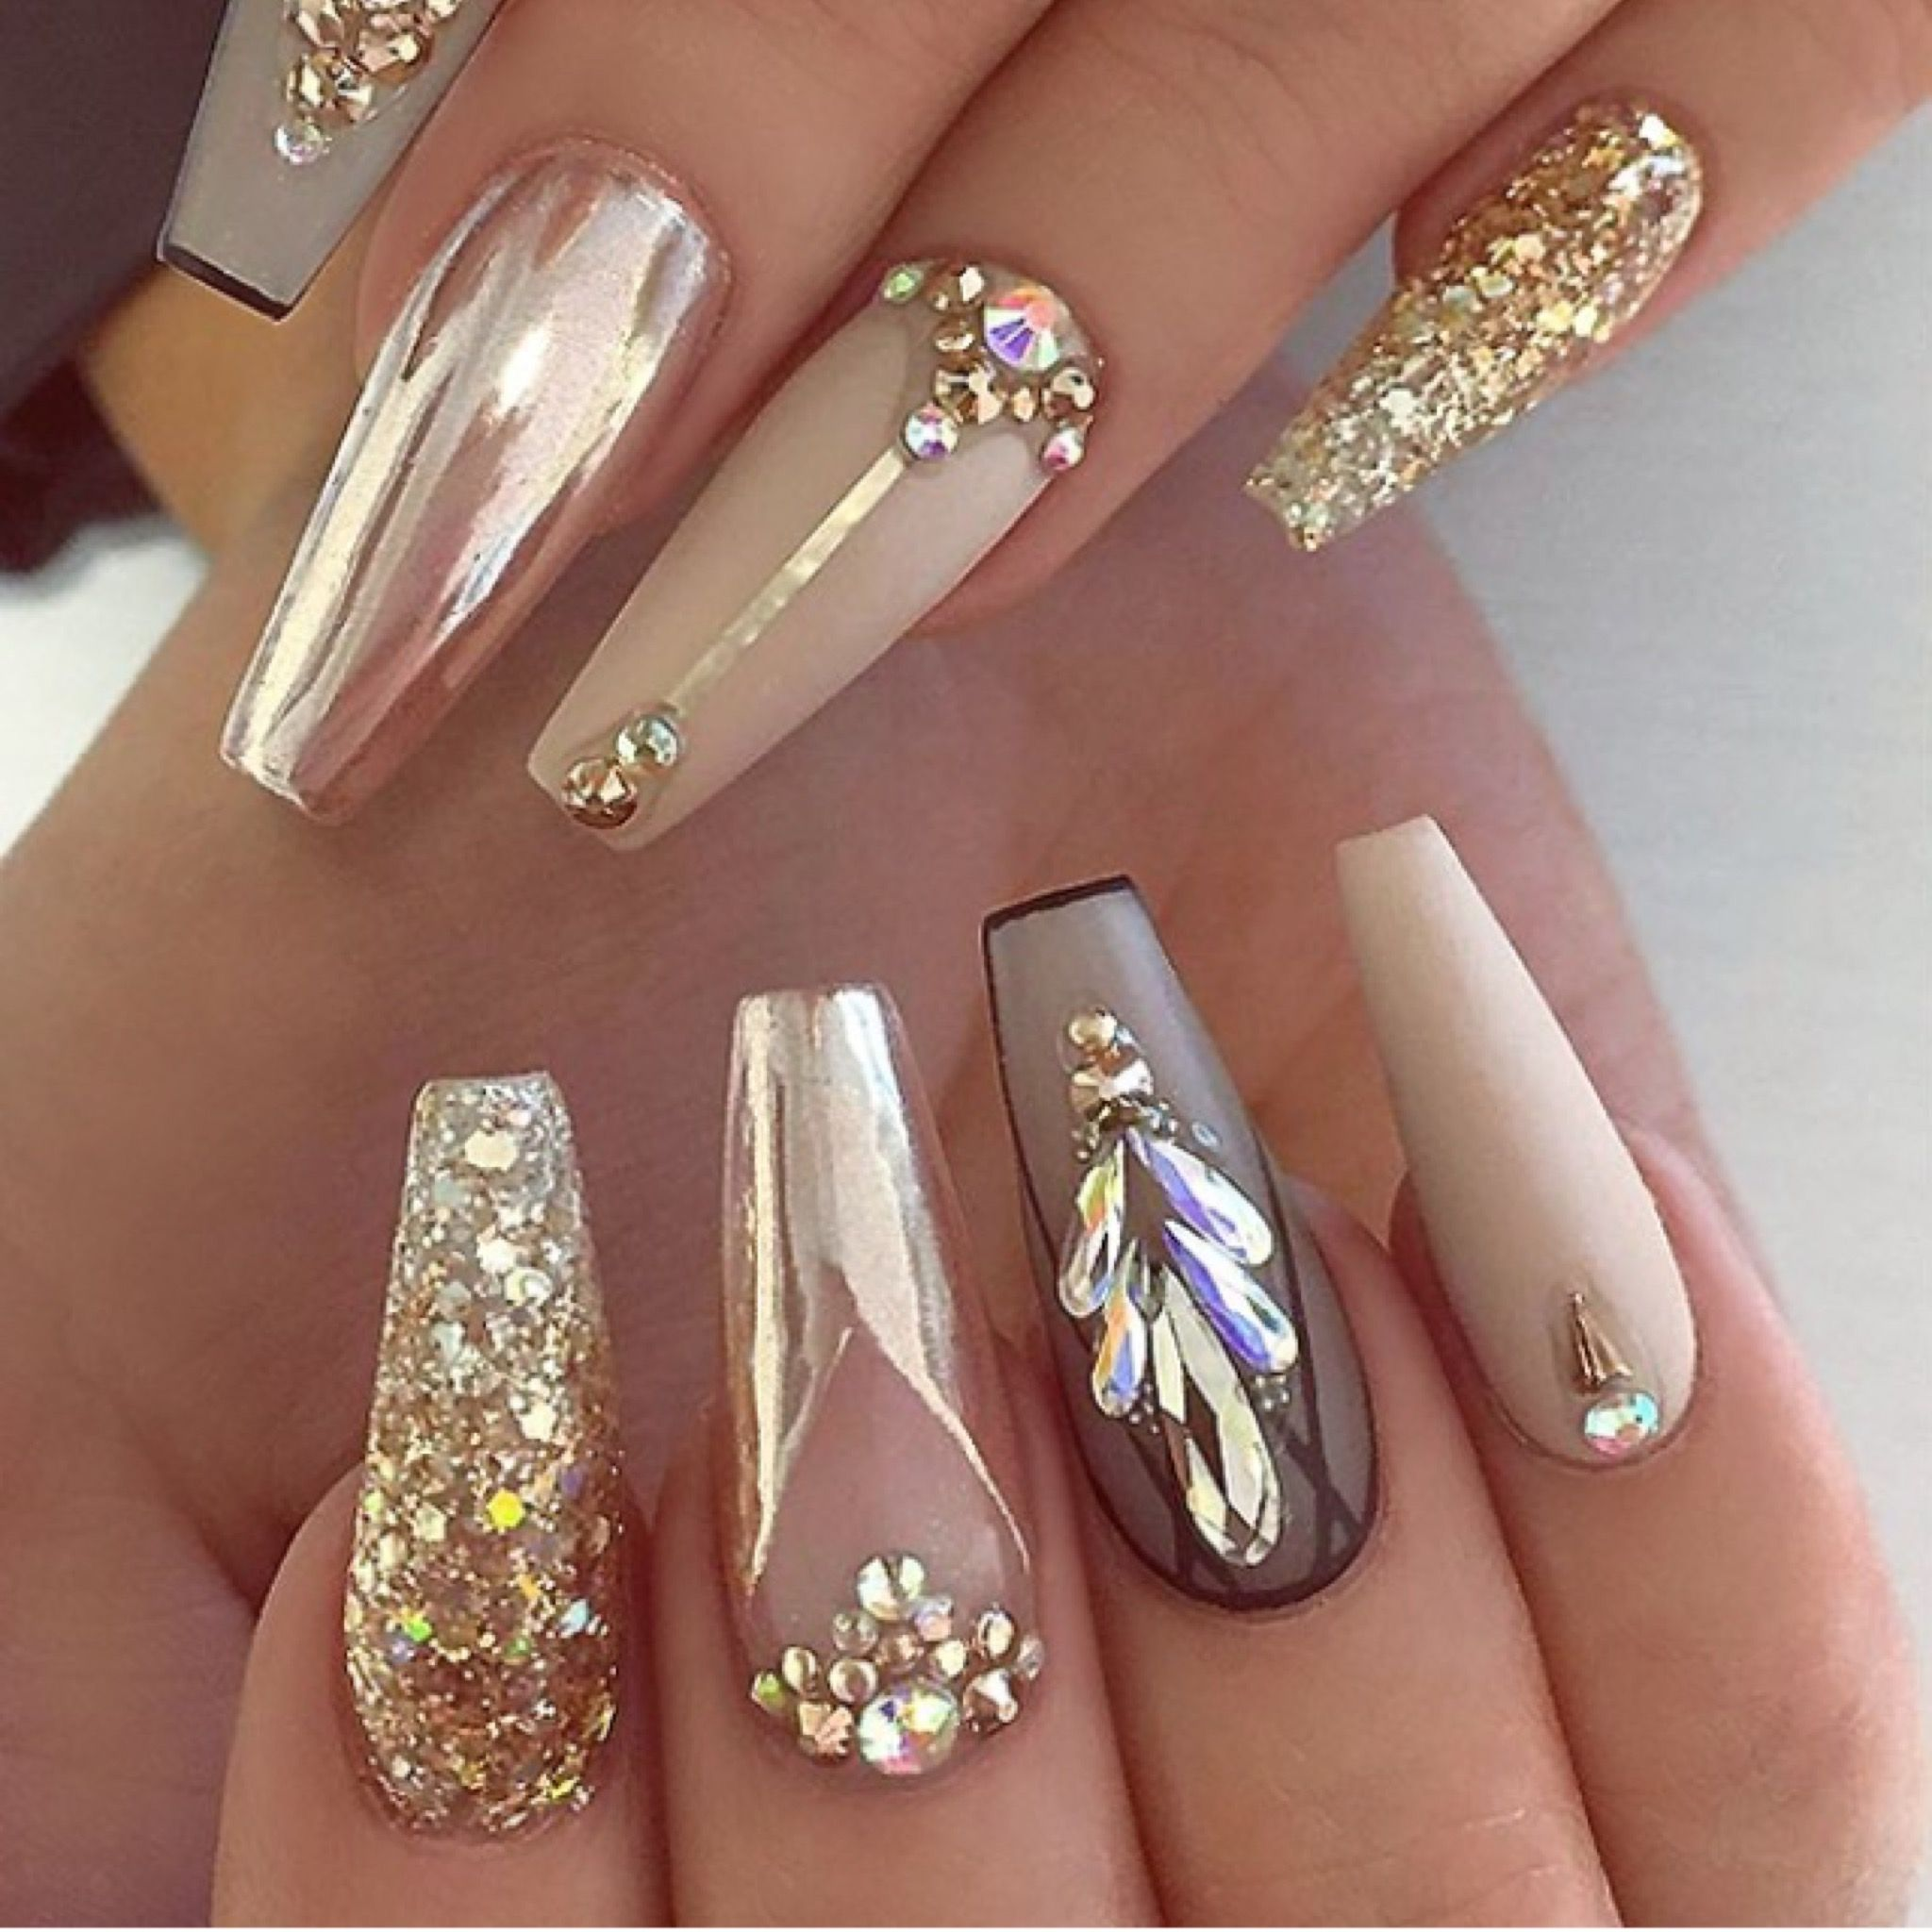 Pin by chloe monroe on nail pinterest nail nail make up and shades of gold nail art on coffin nails prinsesfo Gallery